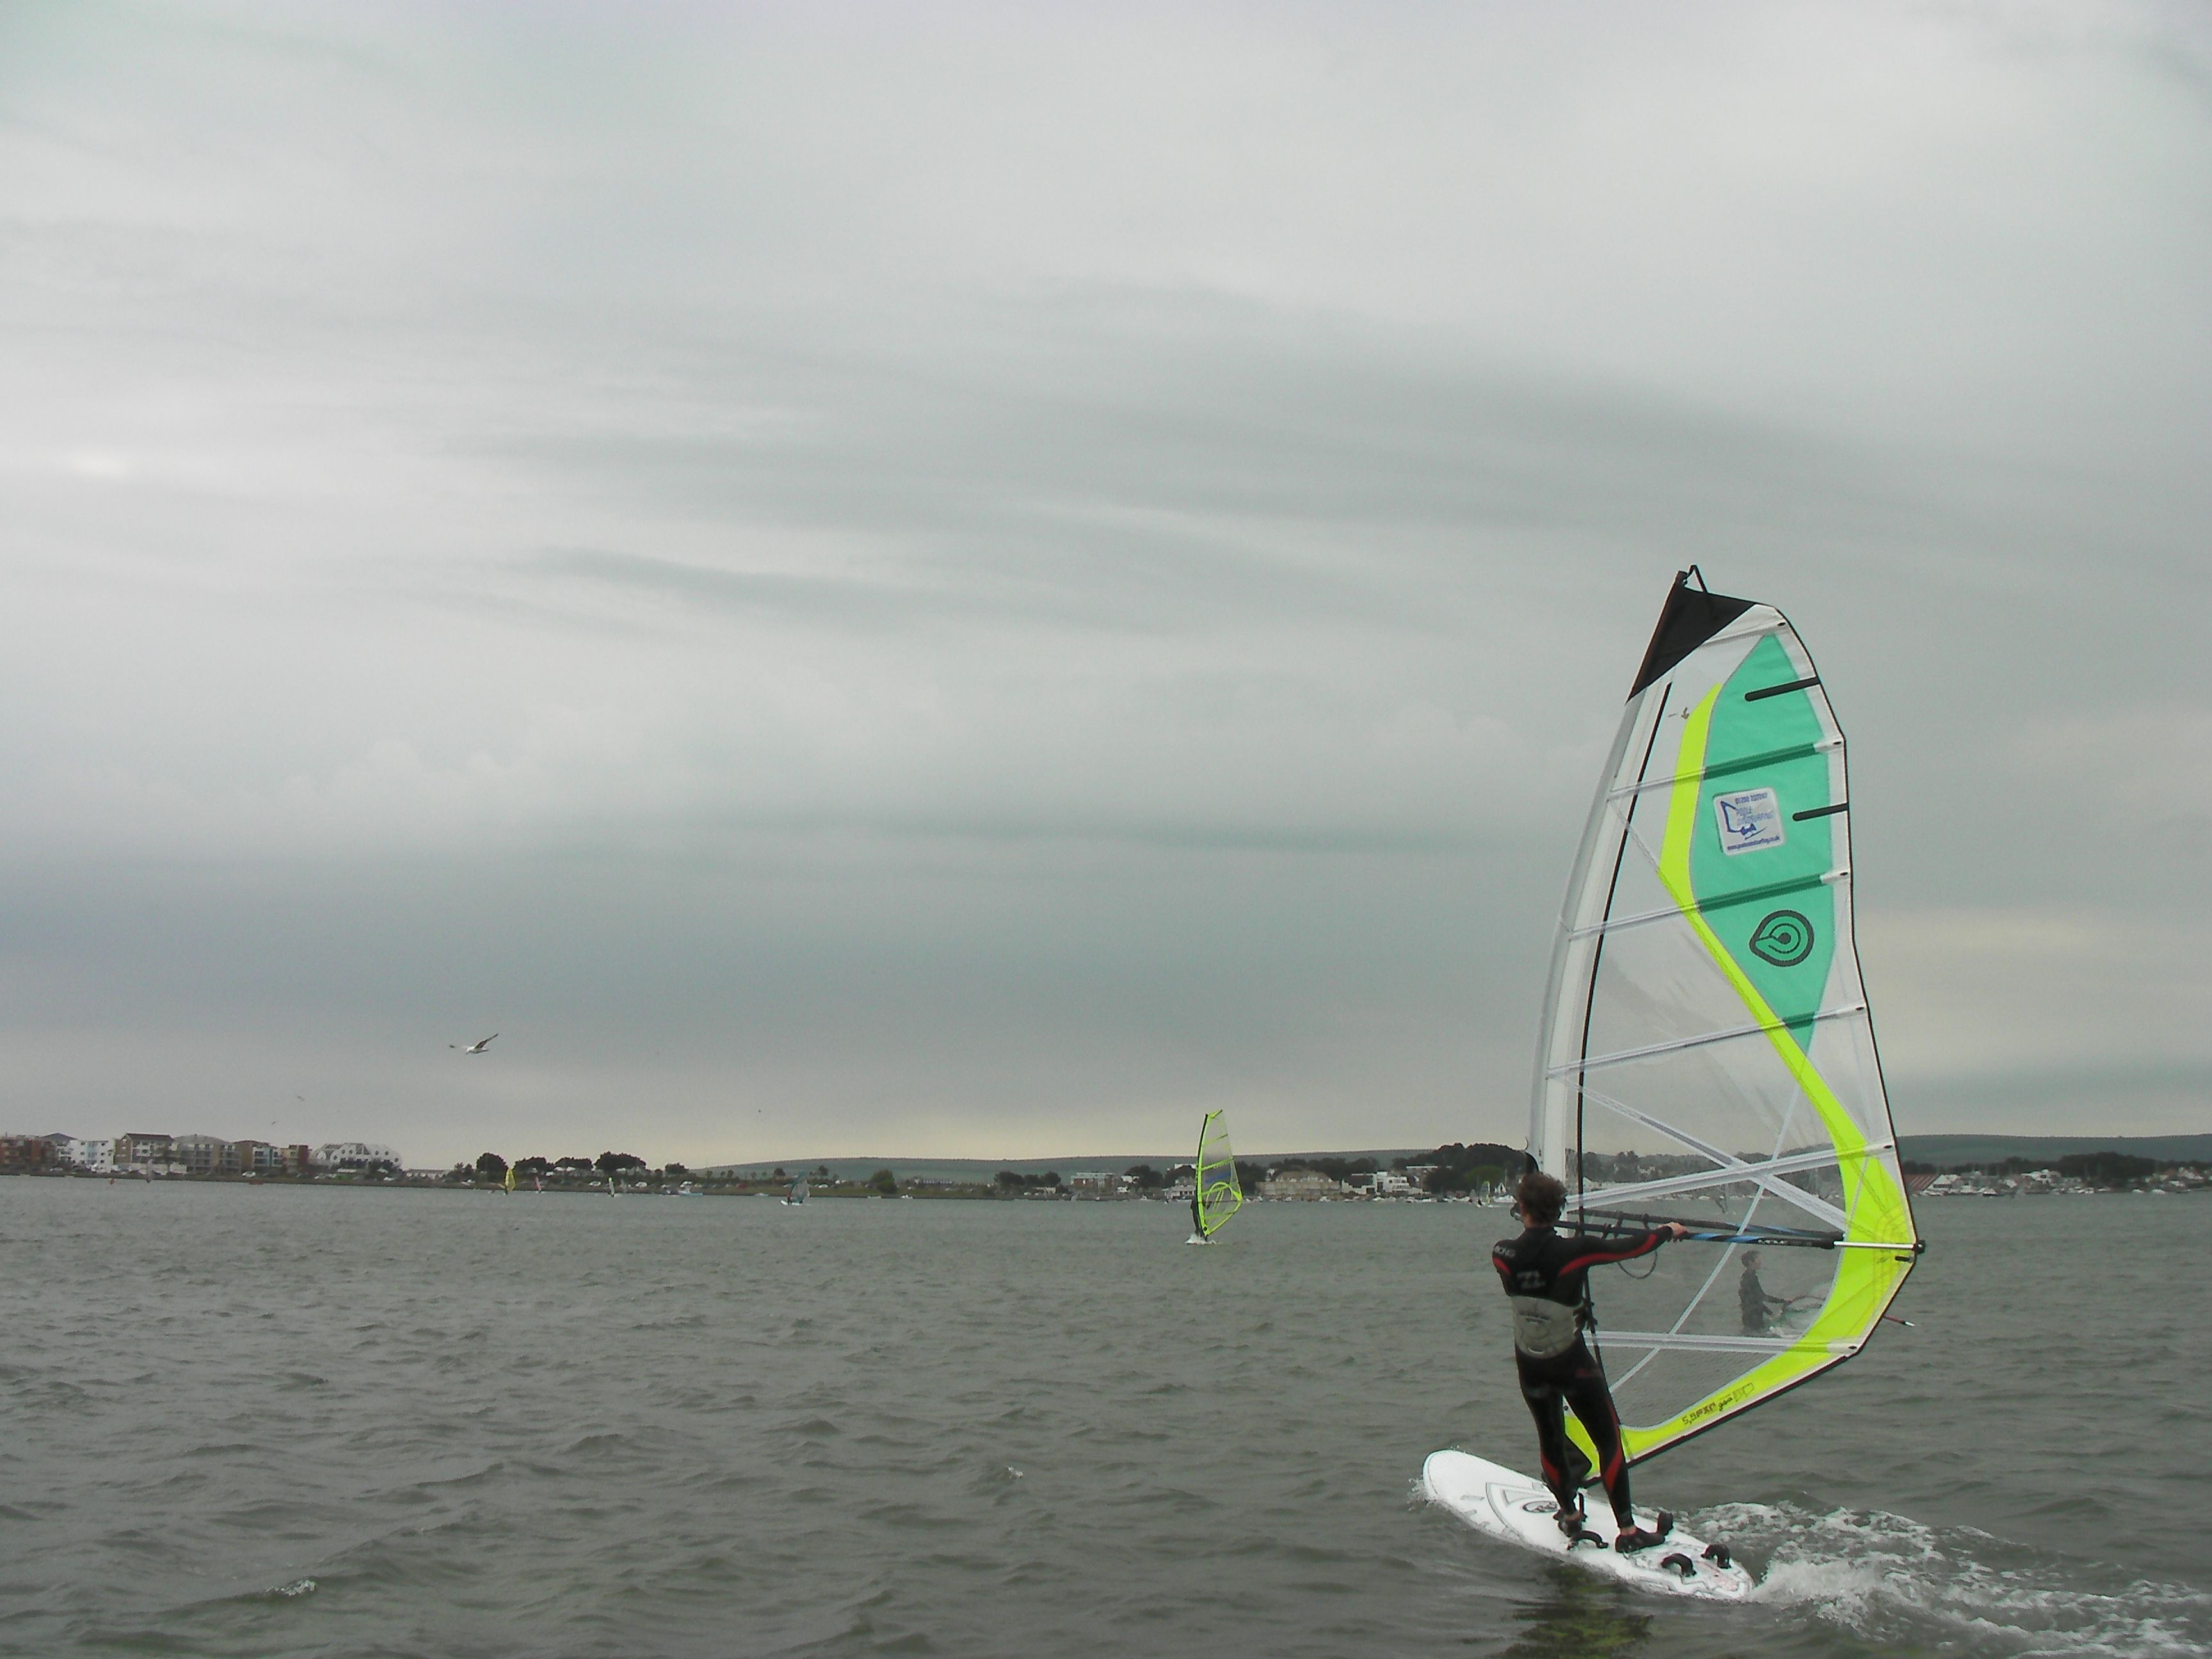 Getting your windsurf board planing is what its all about